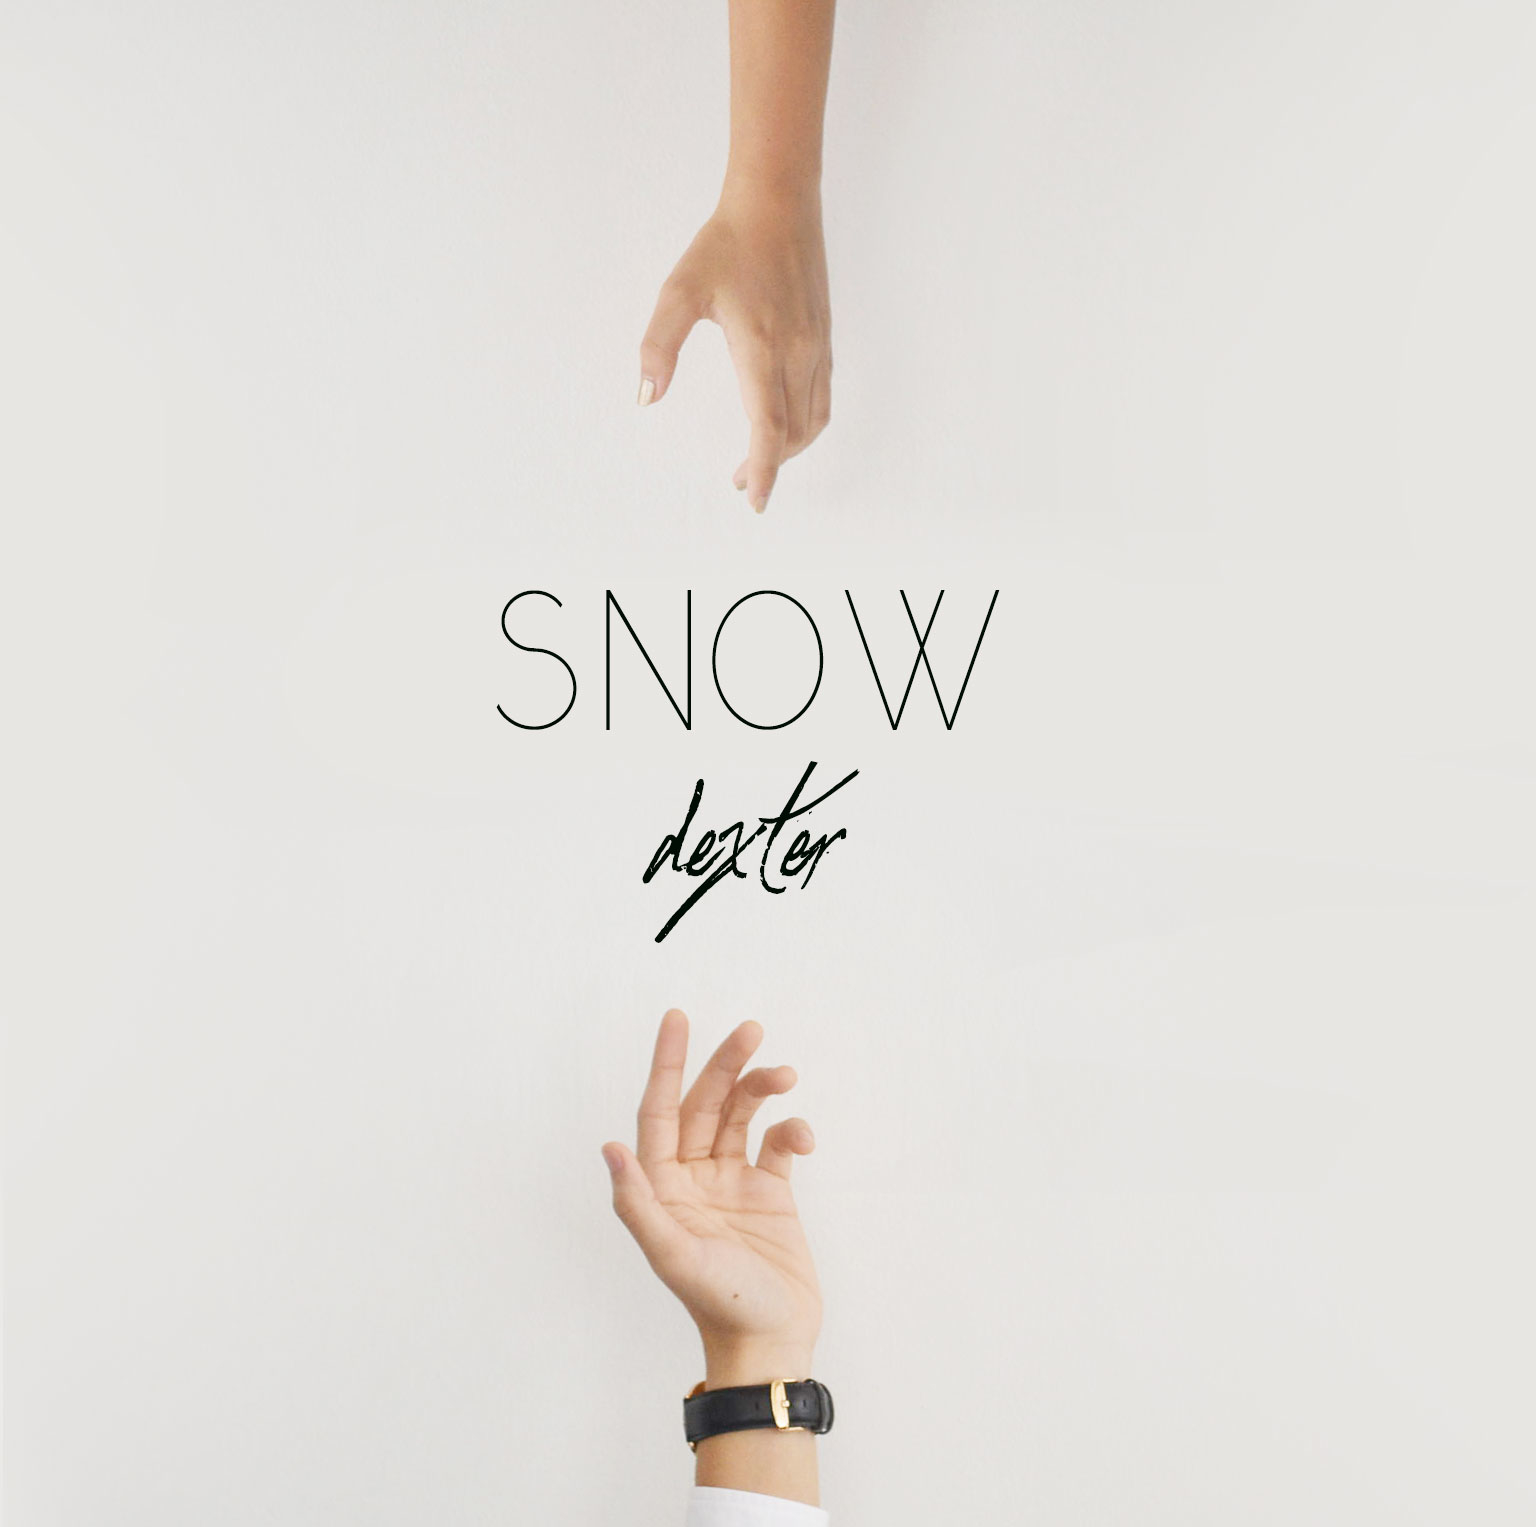 SNOW-ALBUM-ART